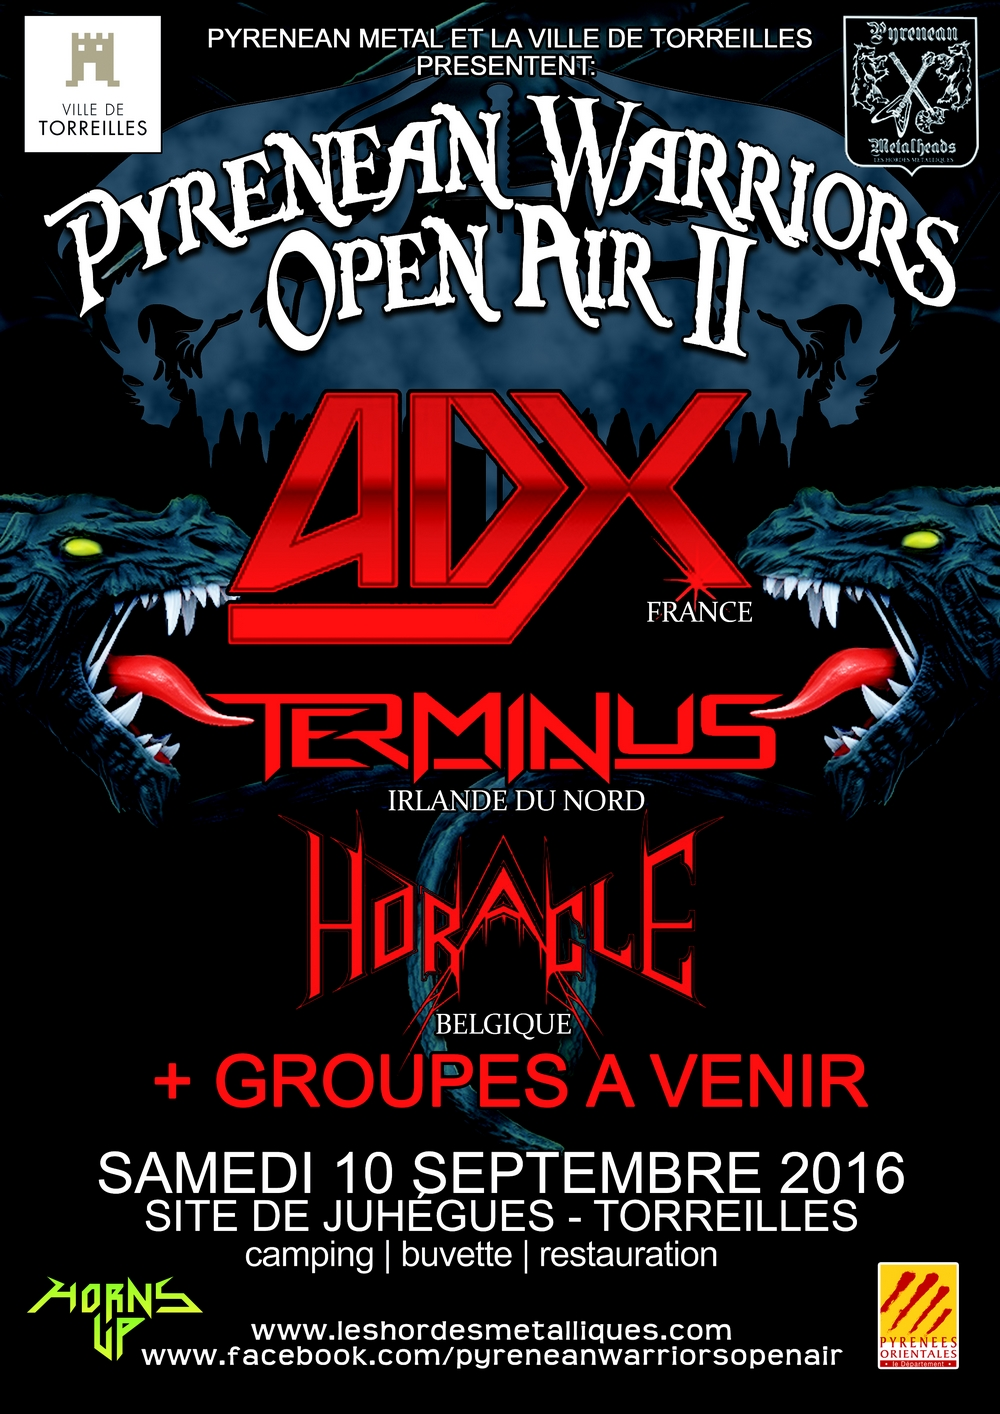 Pyrenean Warriors Open Air 2016 Annonce-1%20copie_hu